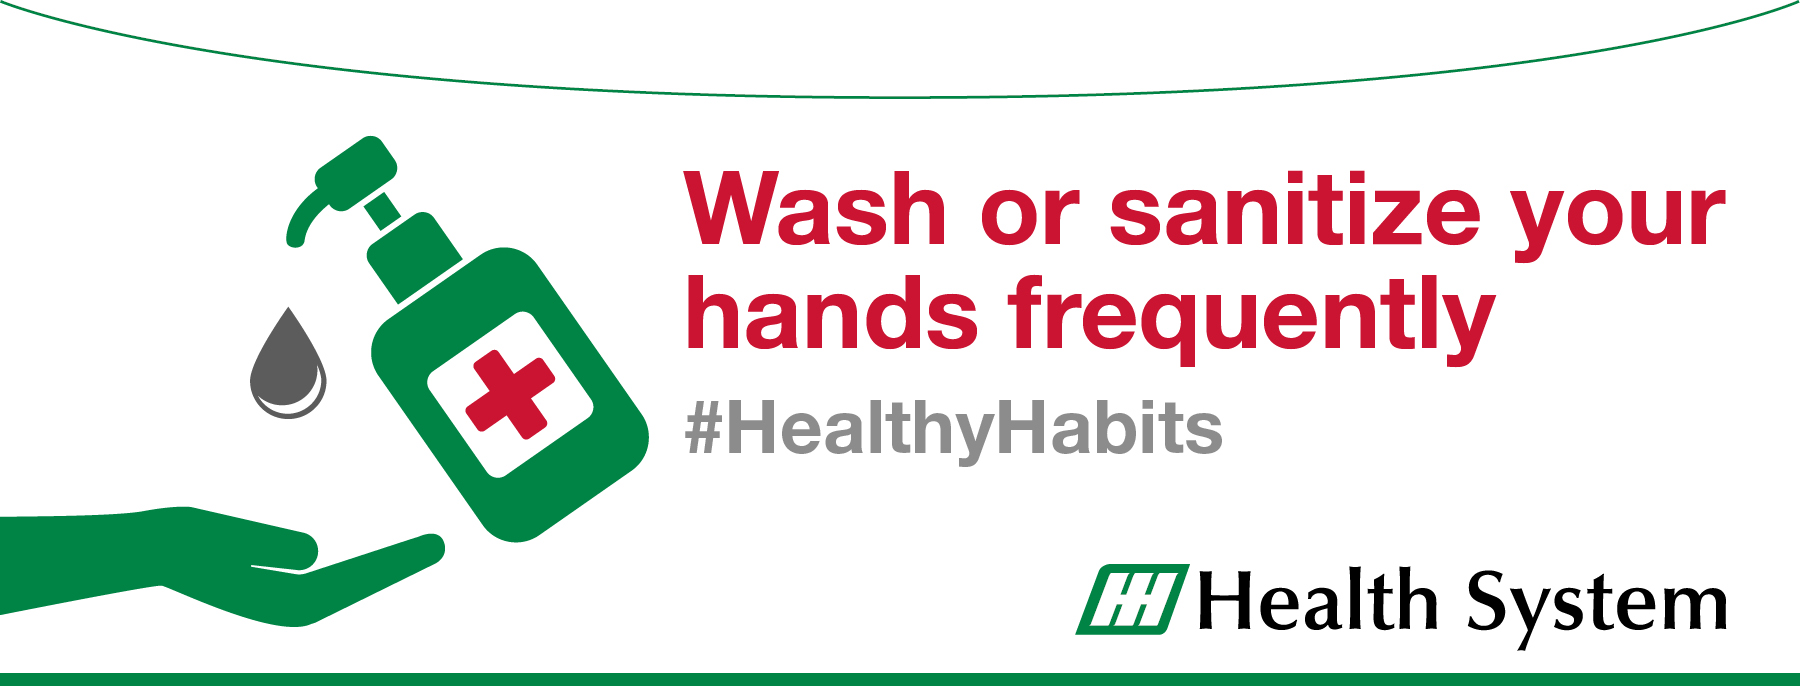 Wash/Sanitize your hands